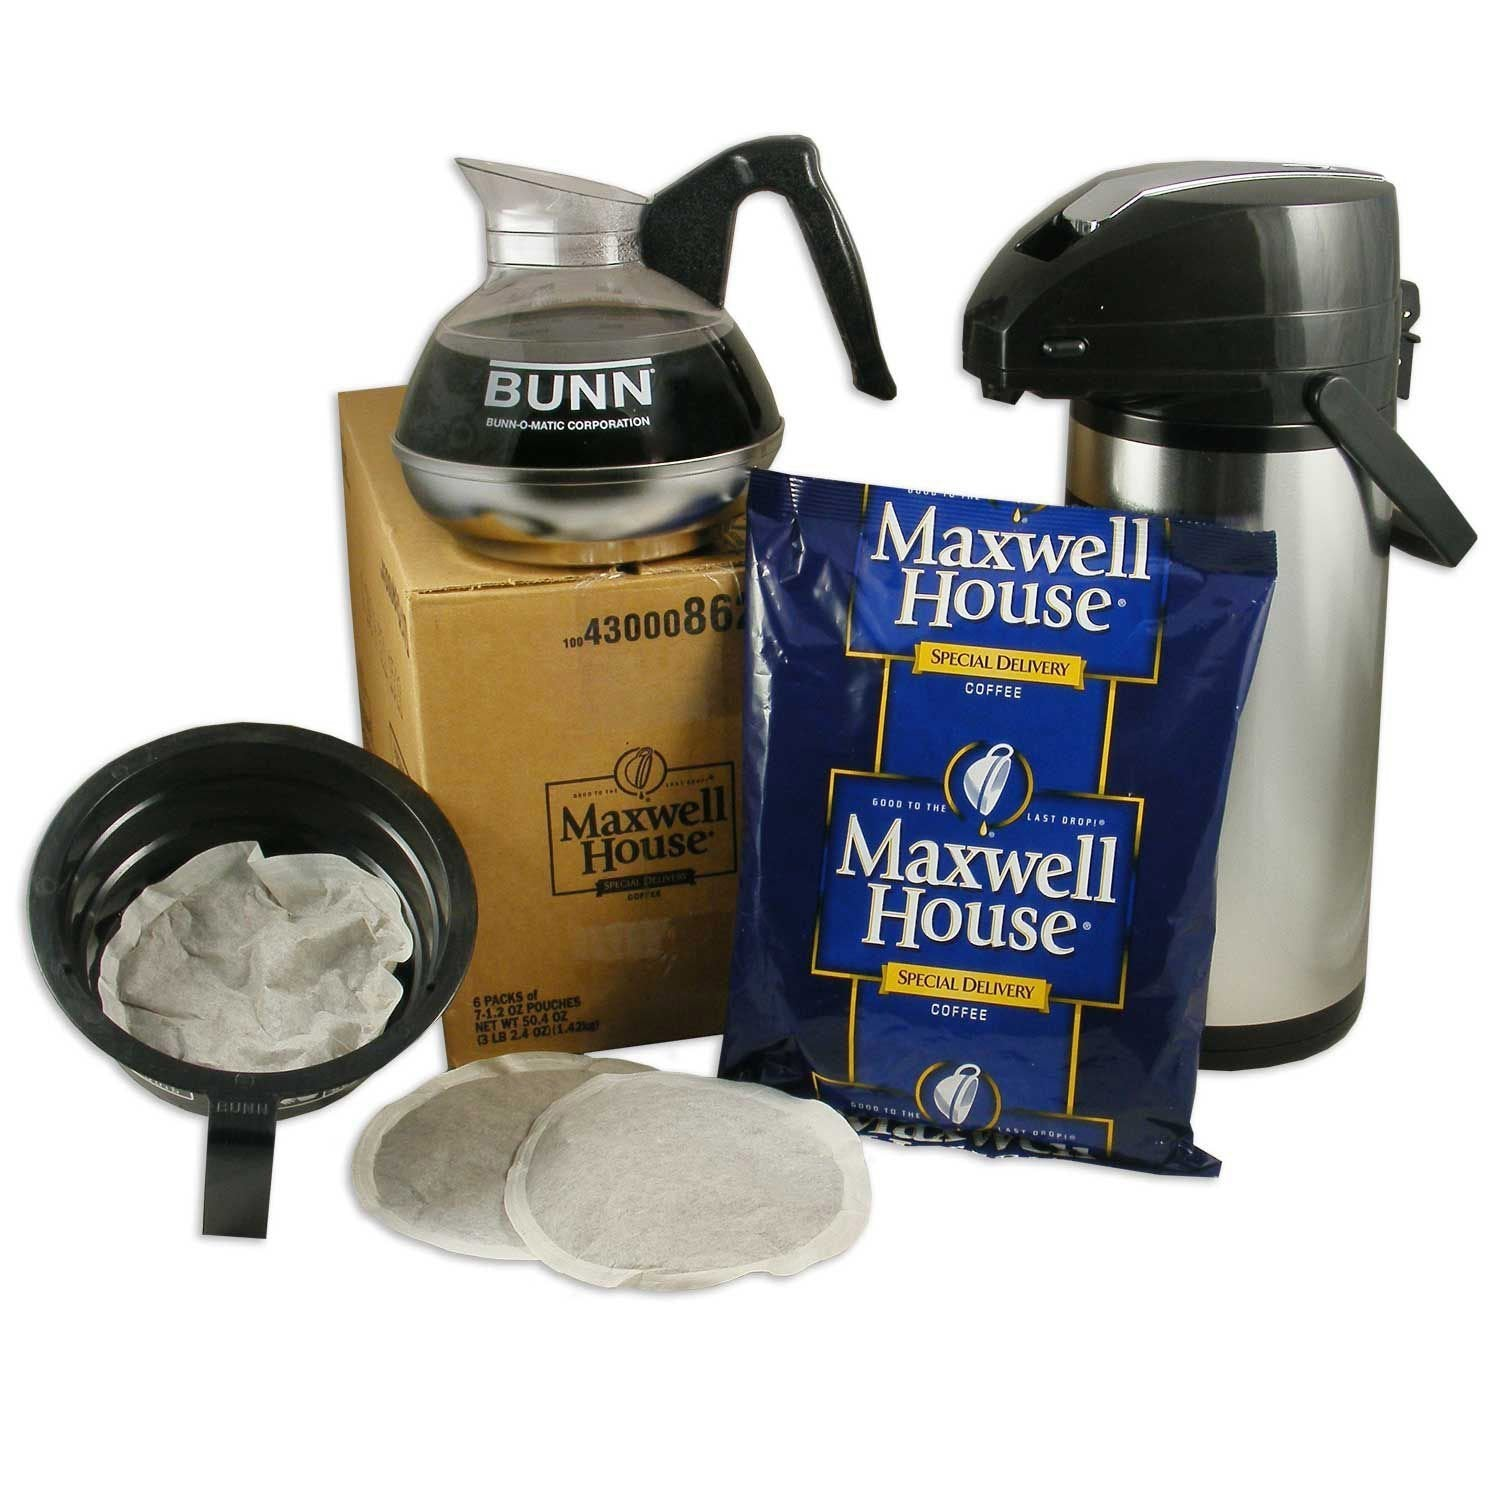 Maxwell House Coffee - Special Delivery - 12 Cup Filter Pack - 42. 1.2oz. Packages from Vistar